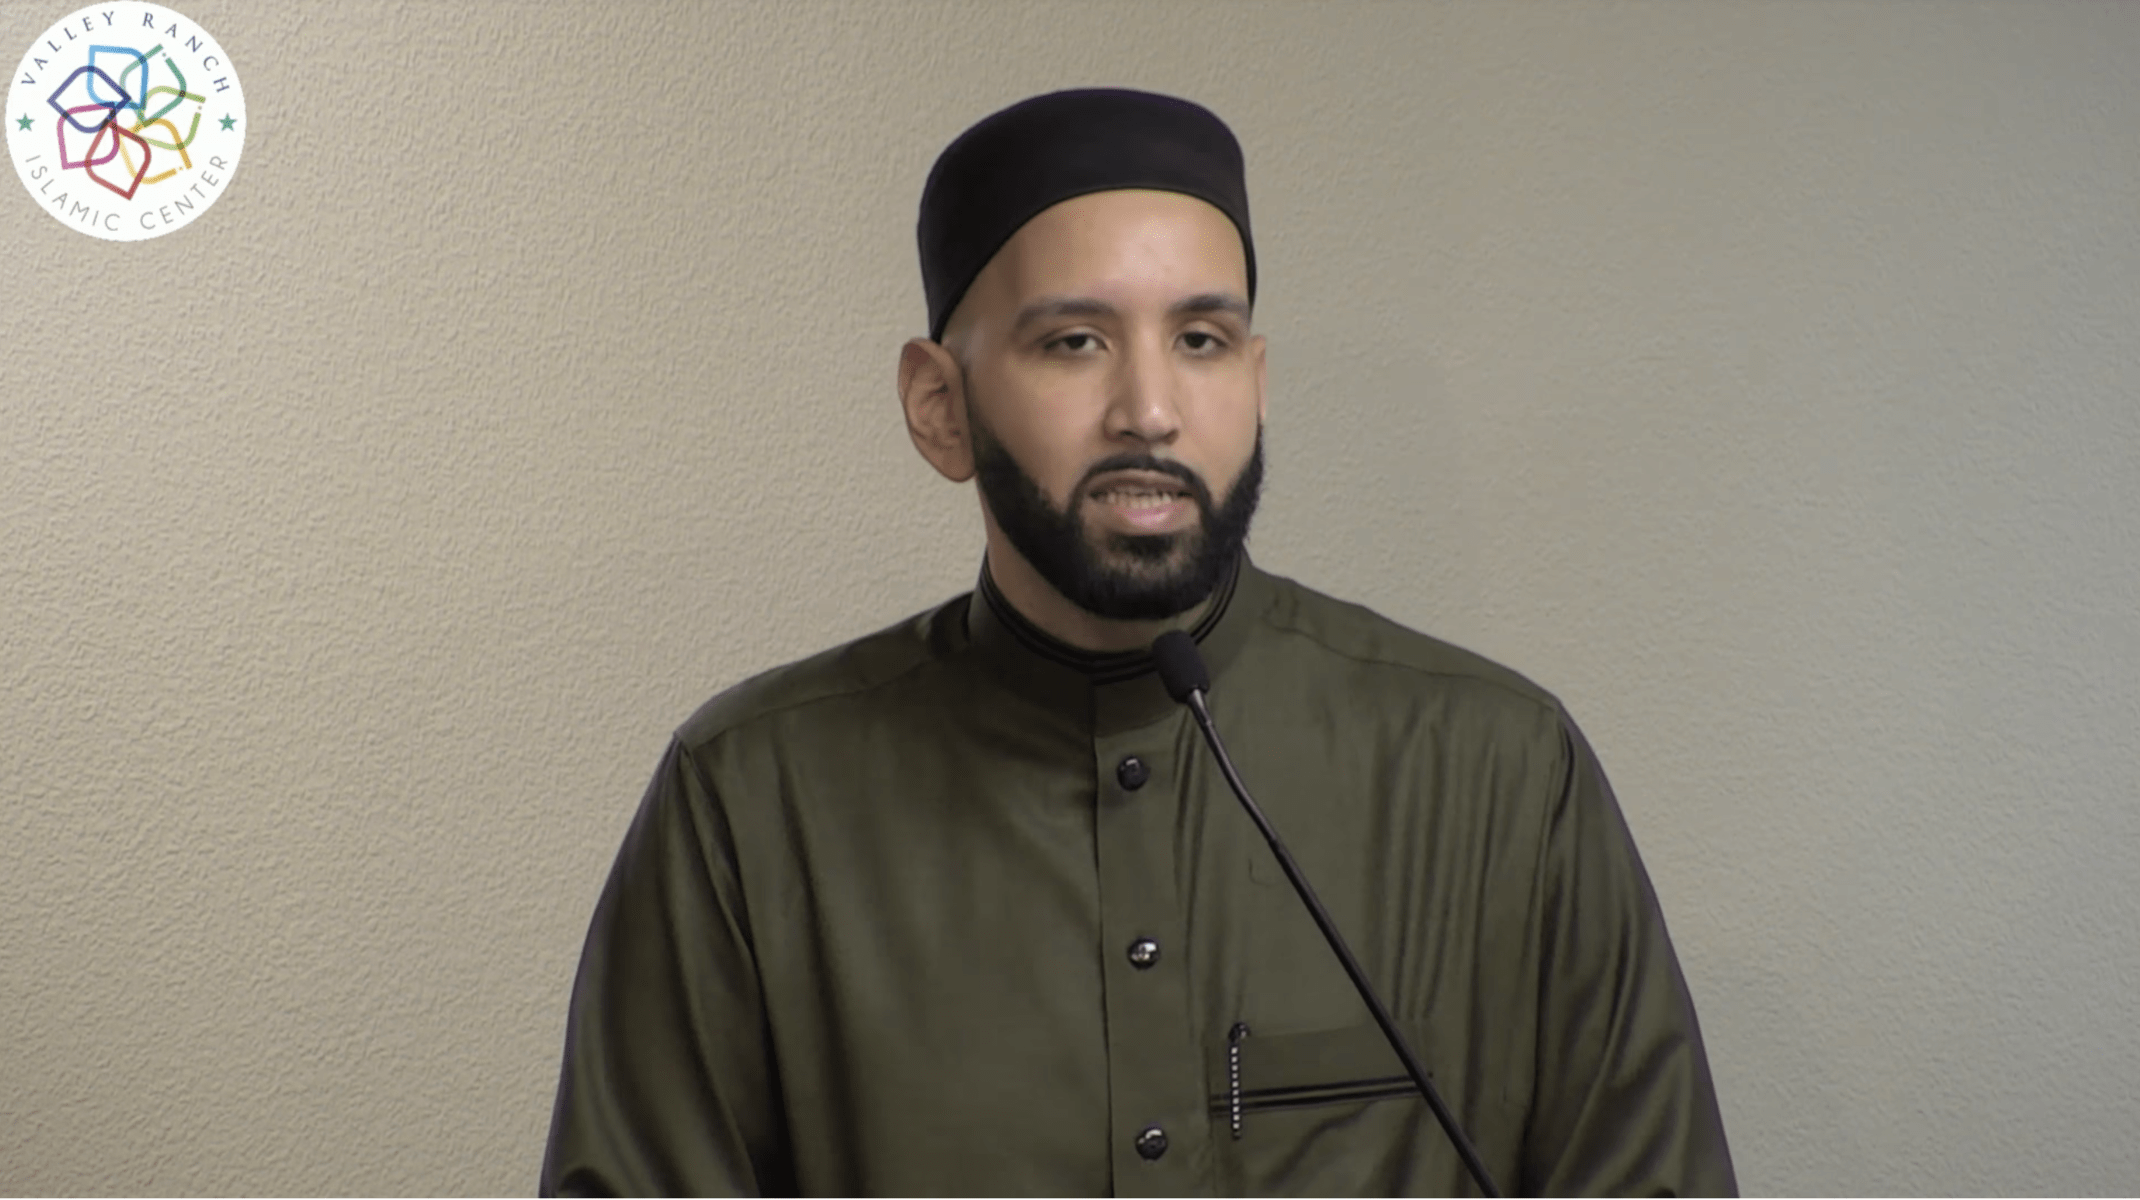 Omar Suleiman – Forgive but should you forget: Knowing when to give a Second Chance